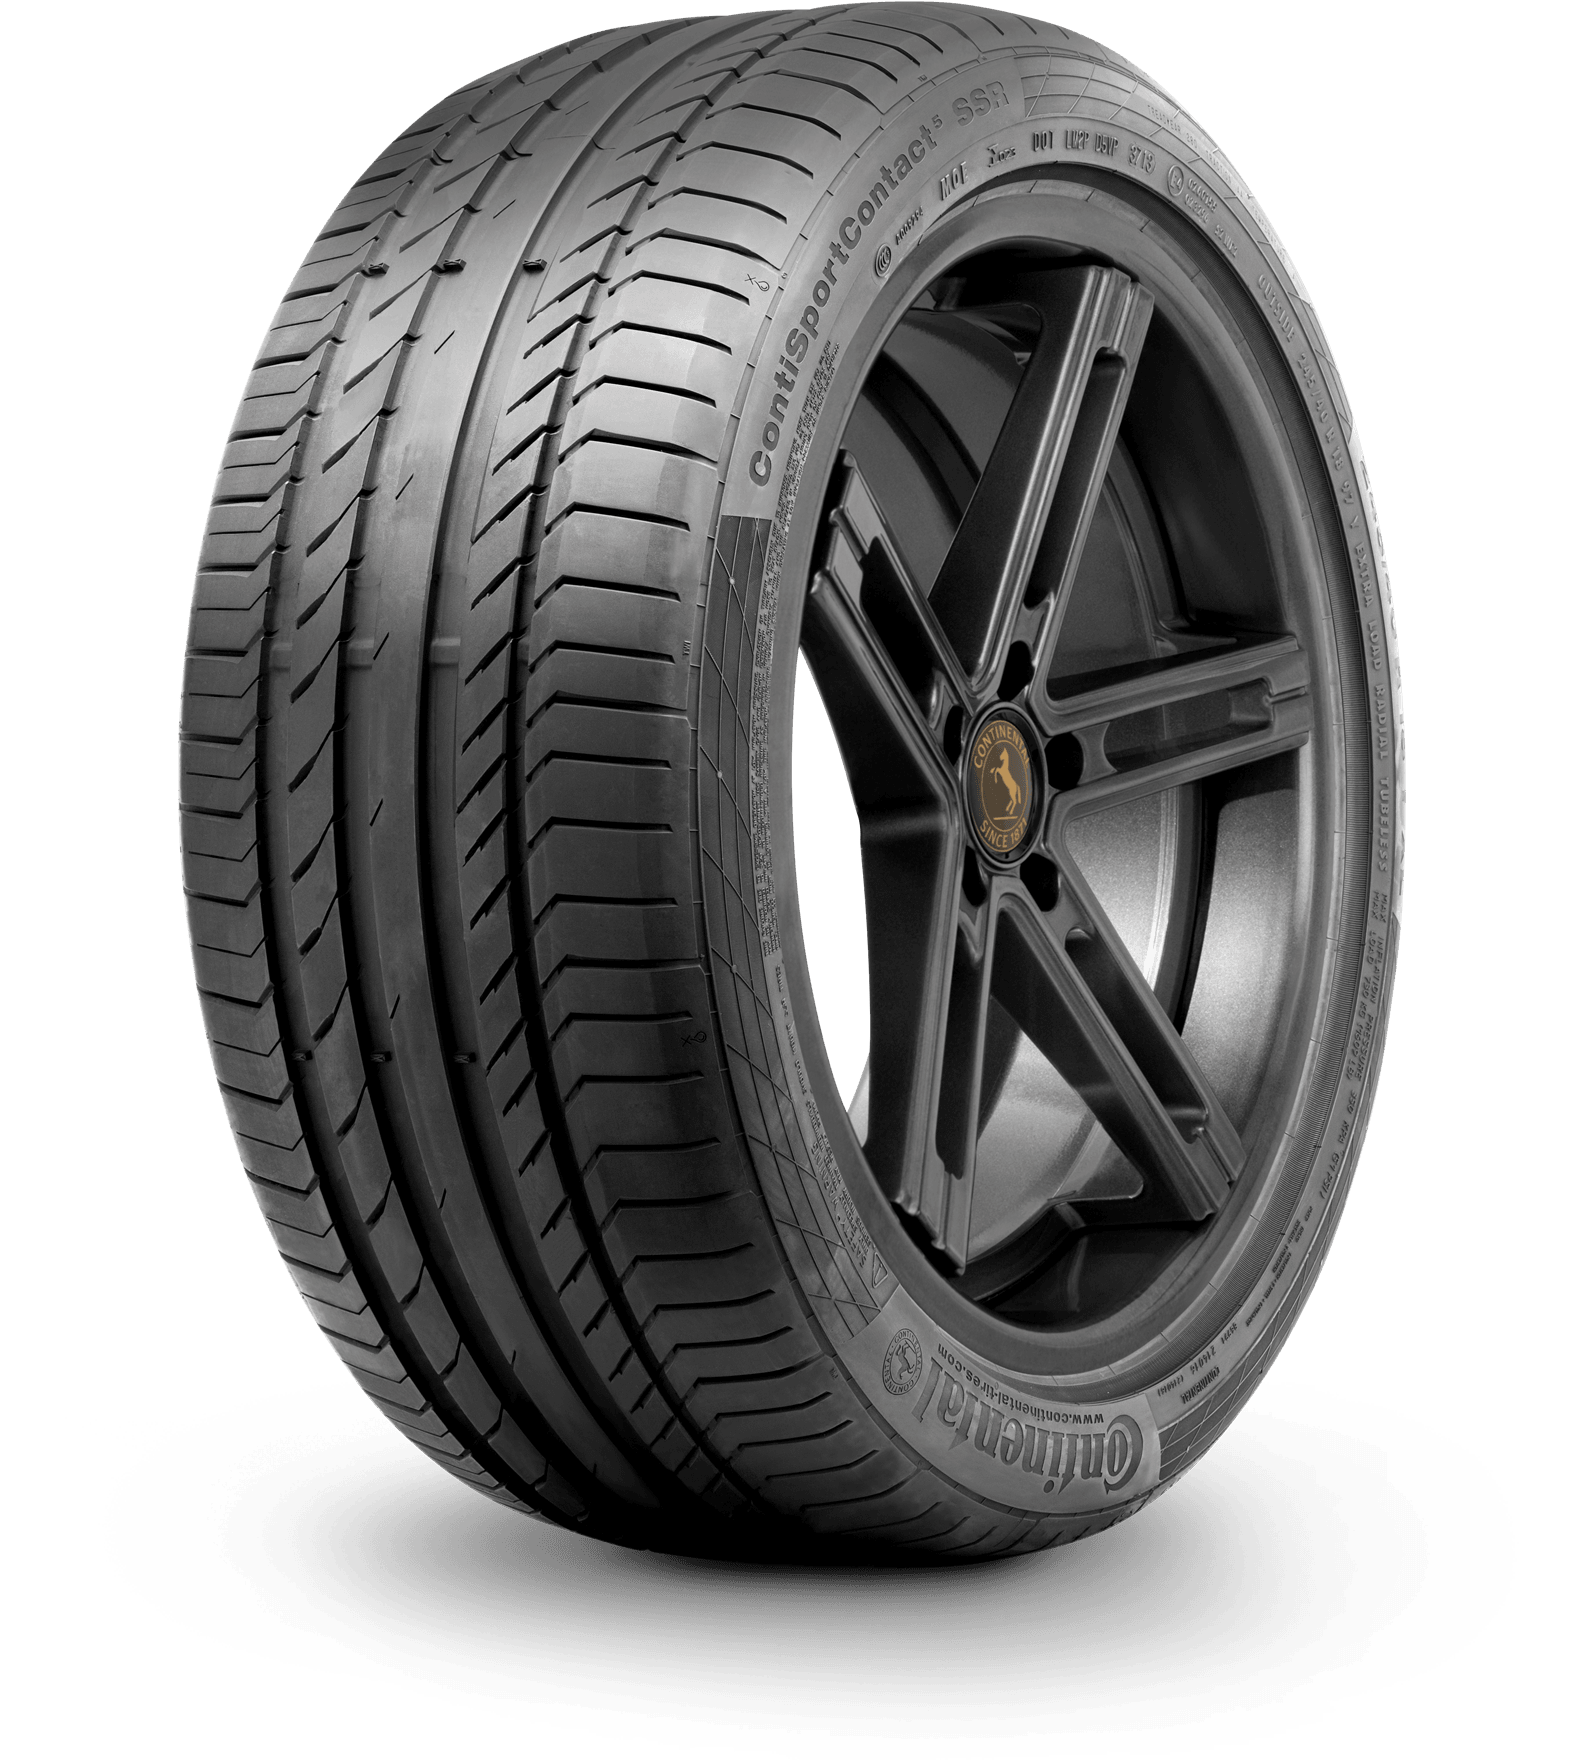 CONTINENTAL  275/35R20 102Y CSC 5P - 2017